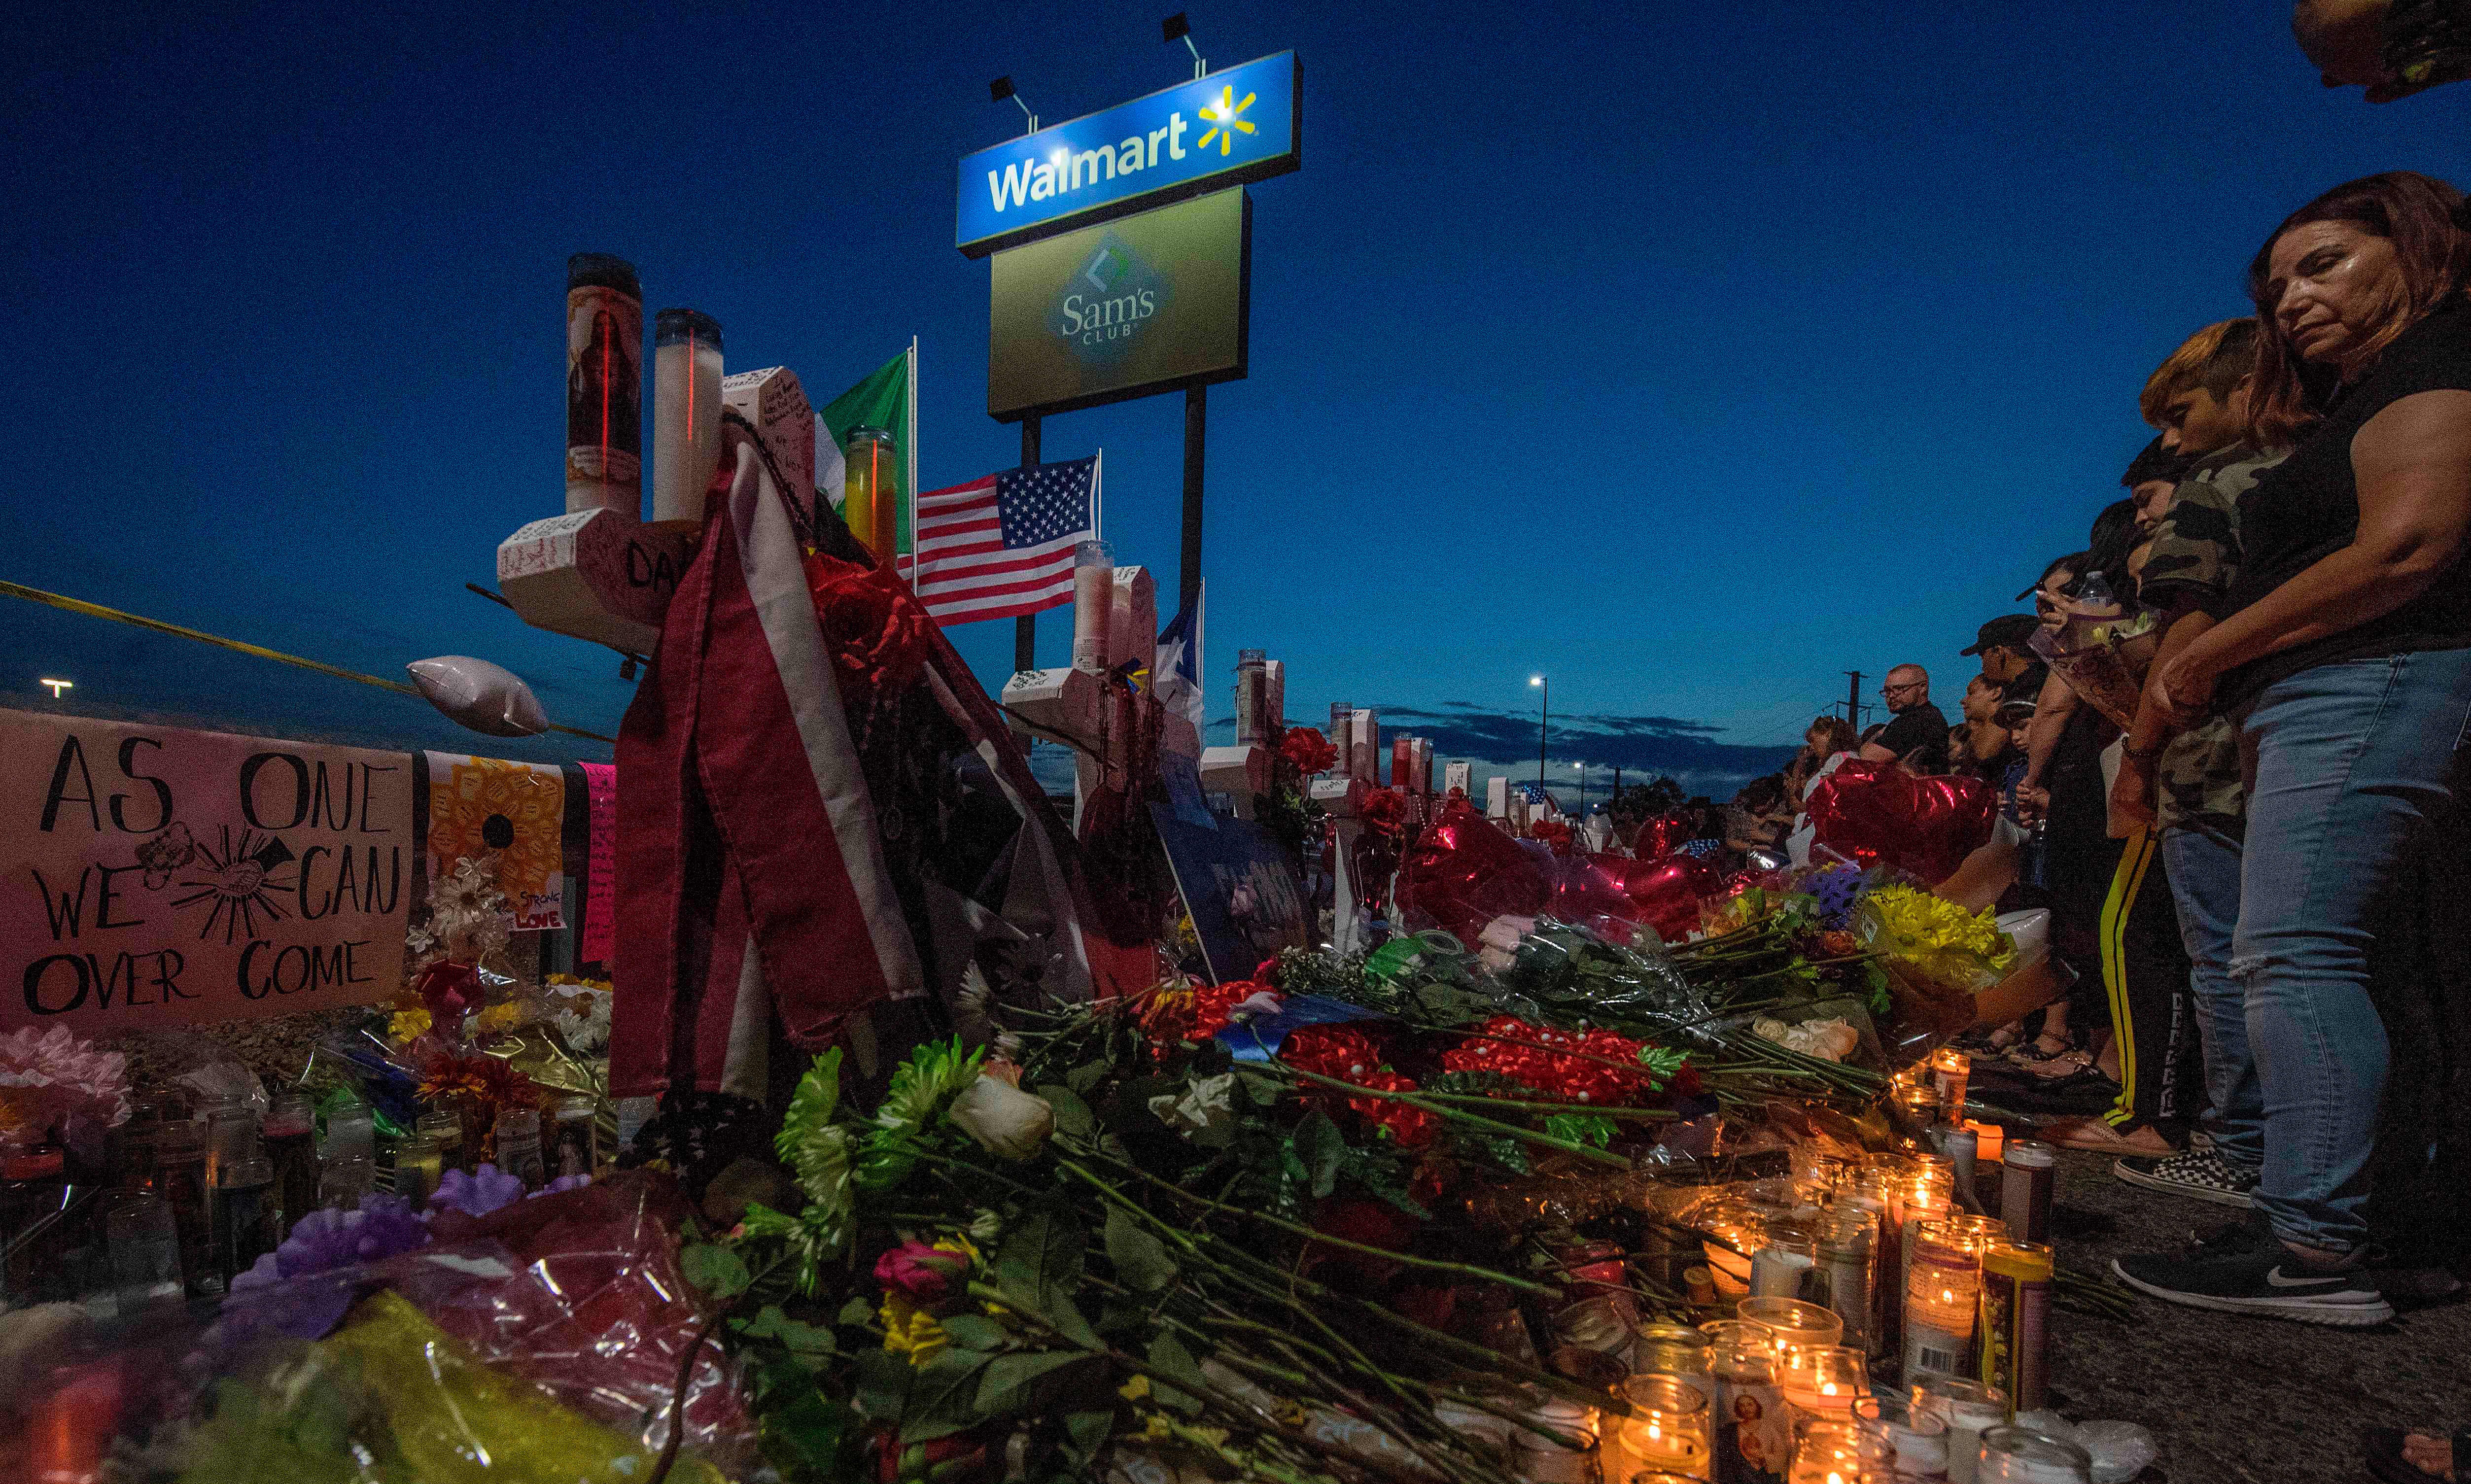 Walmart is taking displays of violent video games out of stores following El Paso shooting